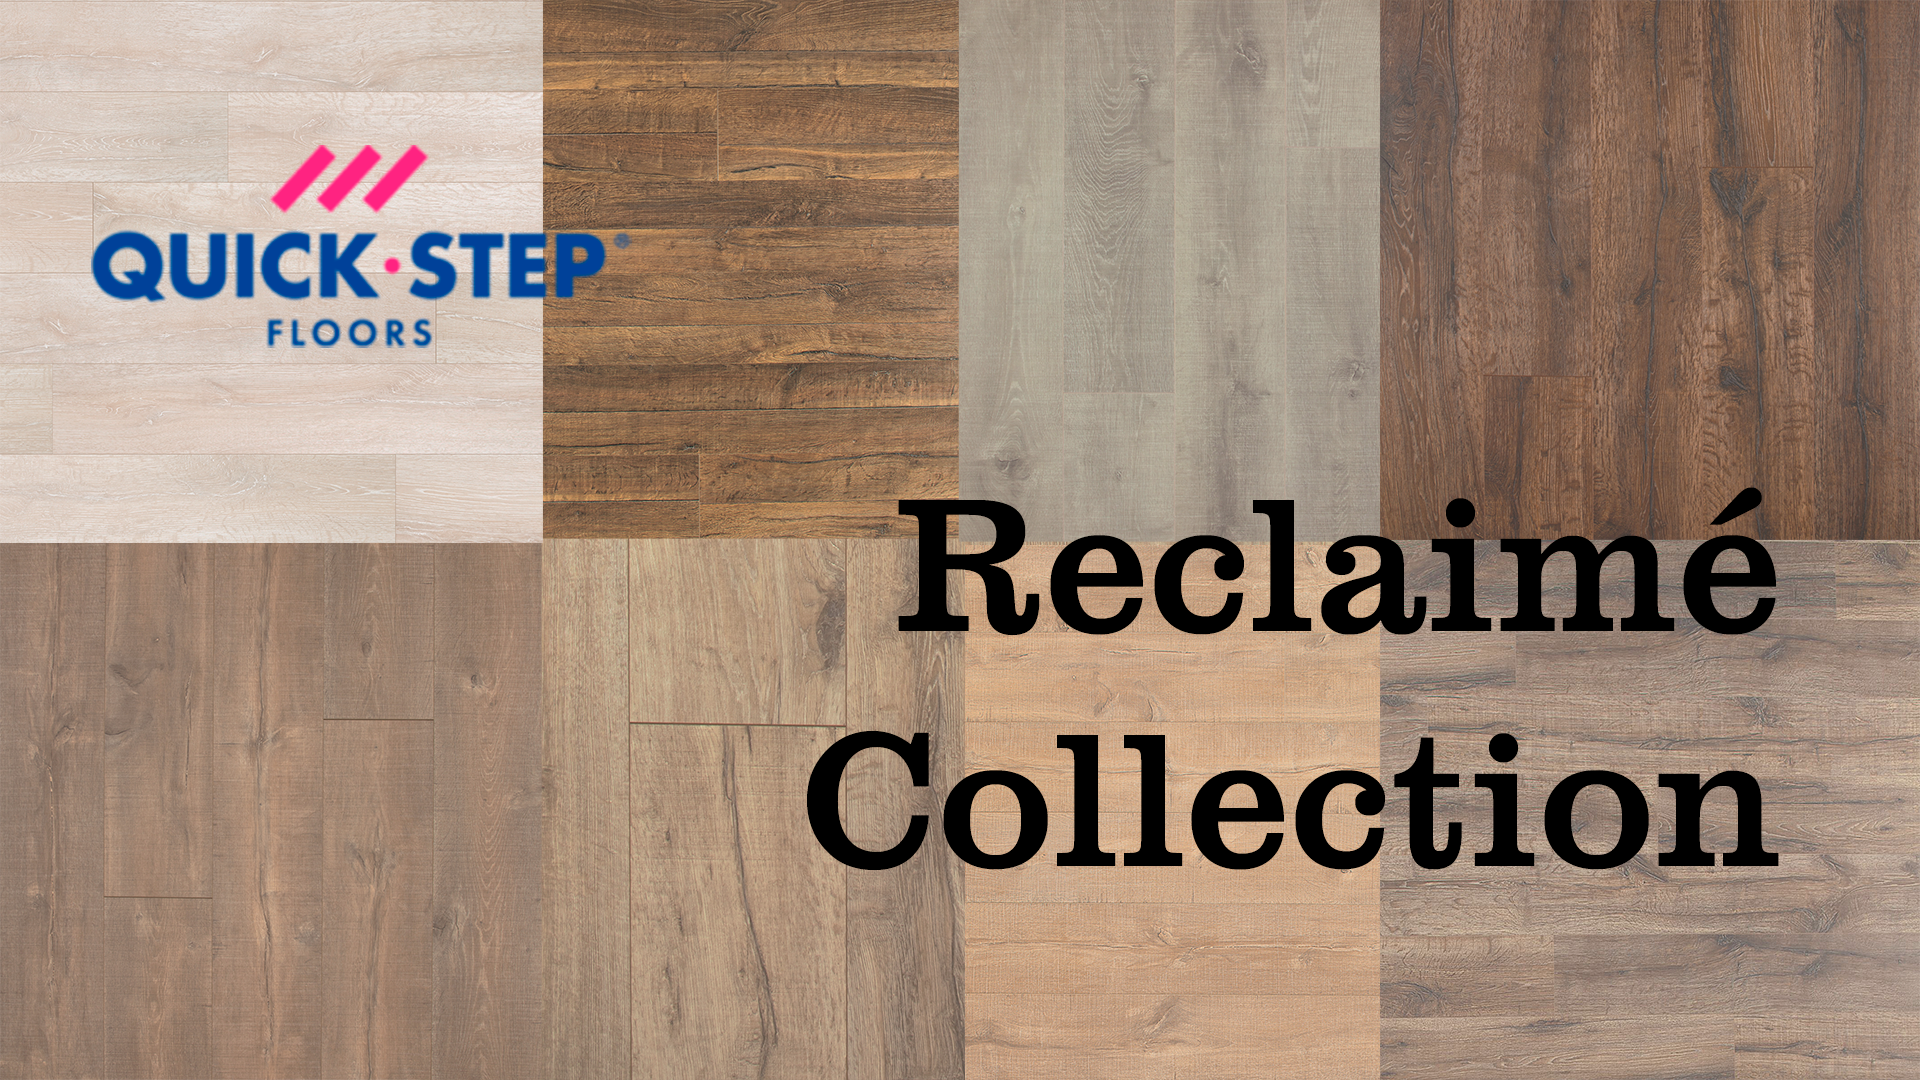 baner quickstep bobsurfaces - Quick-Step